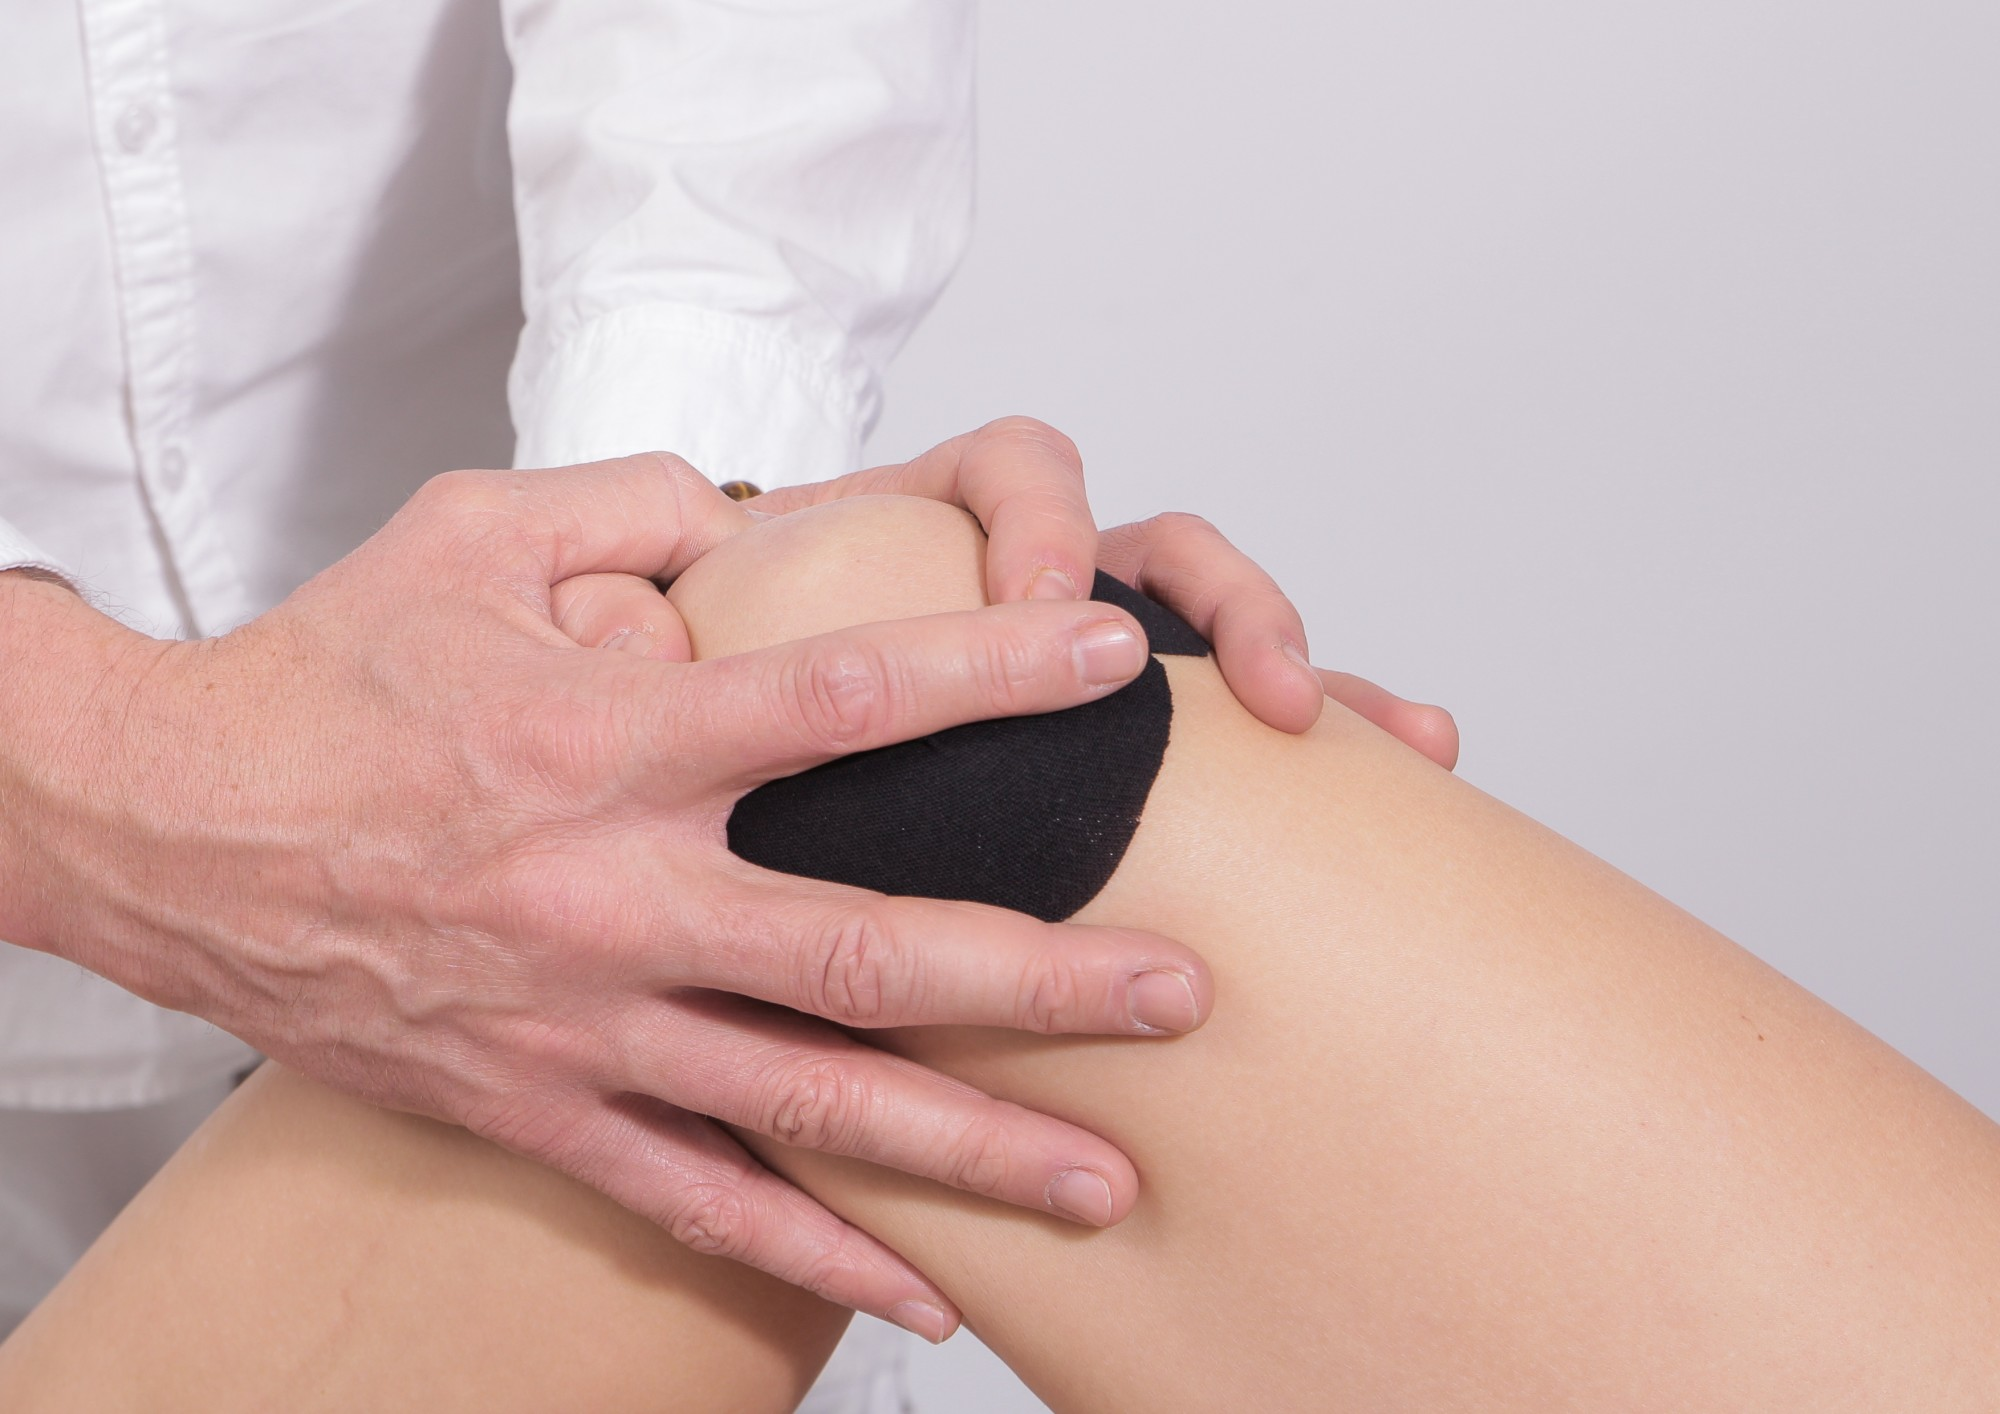 Everything You Need to Know About Having a Swollen Knee